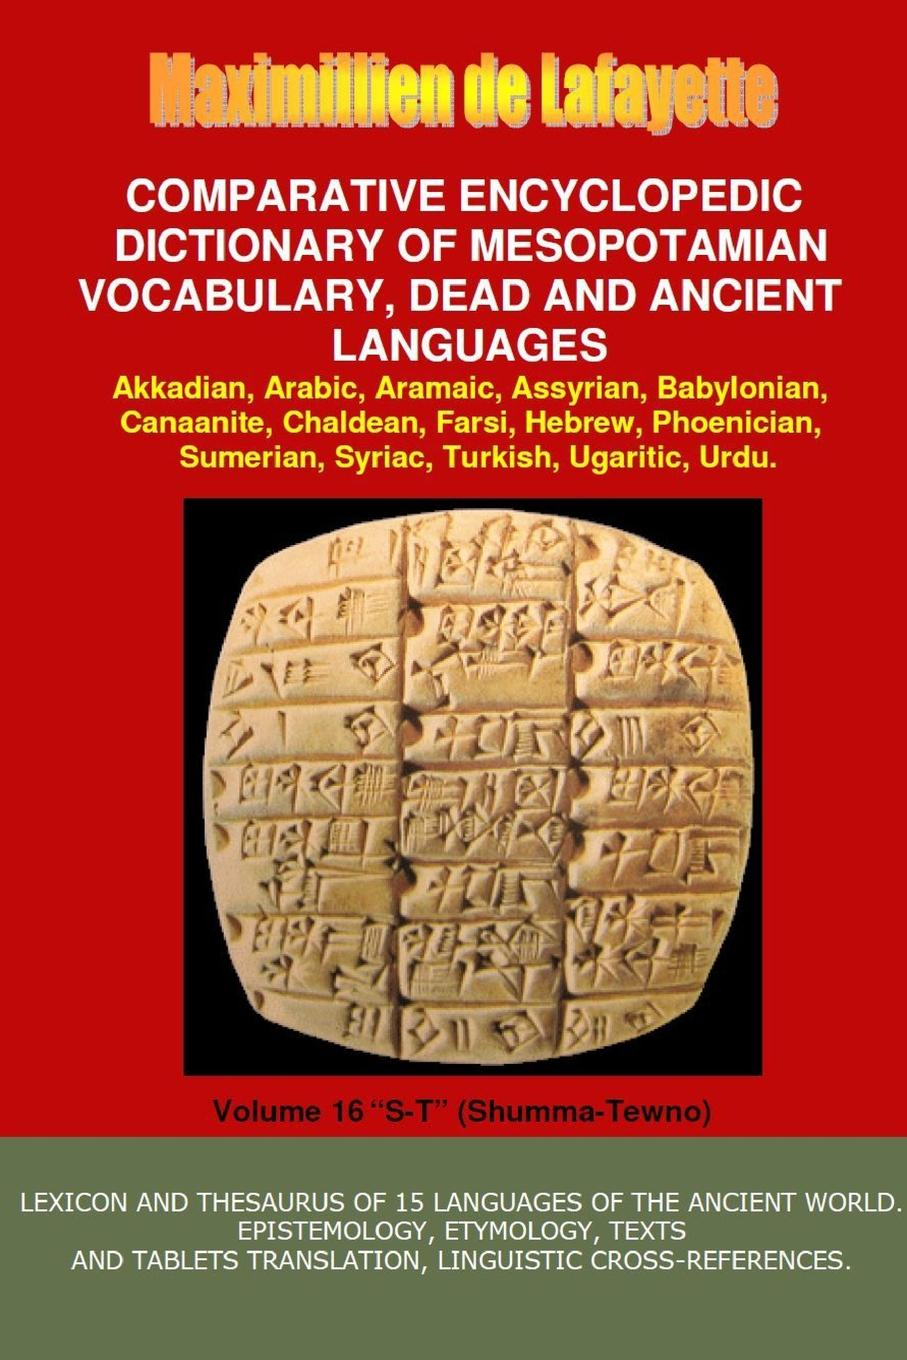 Maximillien De Lafayette V16.Comparative Encyclopedic Dictionary of Mesopotamian Vocabulary Dead . Ancient Languages larry a nichols george a mather alvin j schmidt encyclopedic dictionary of cults sects and world religions